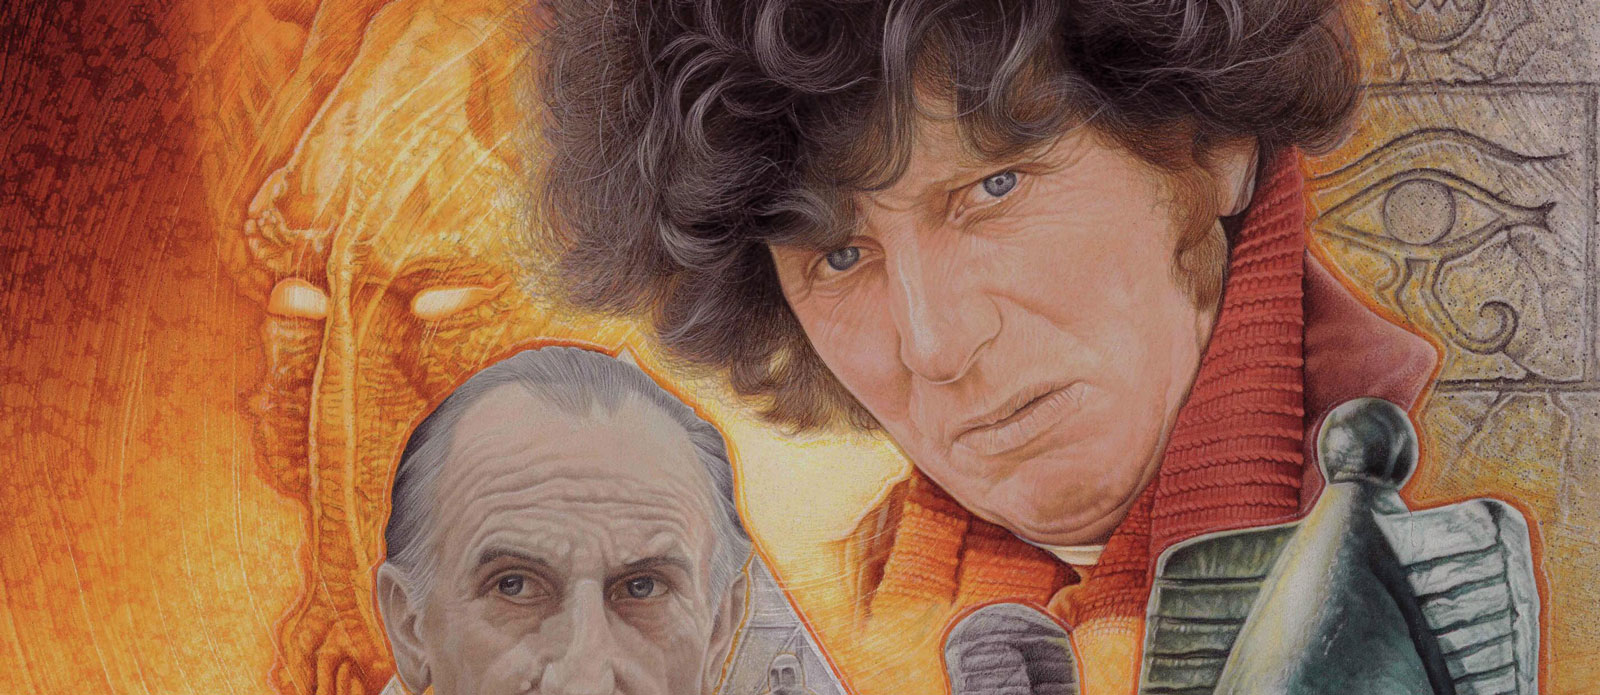 """Sneak Peek: Pete Wallbank's """"Pyramids of Mars"""" Doctor Who cover for INFINITY"""